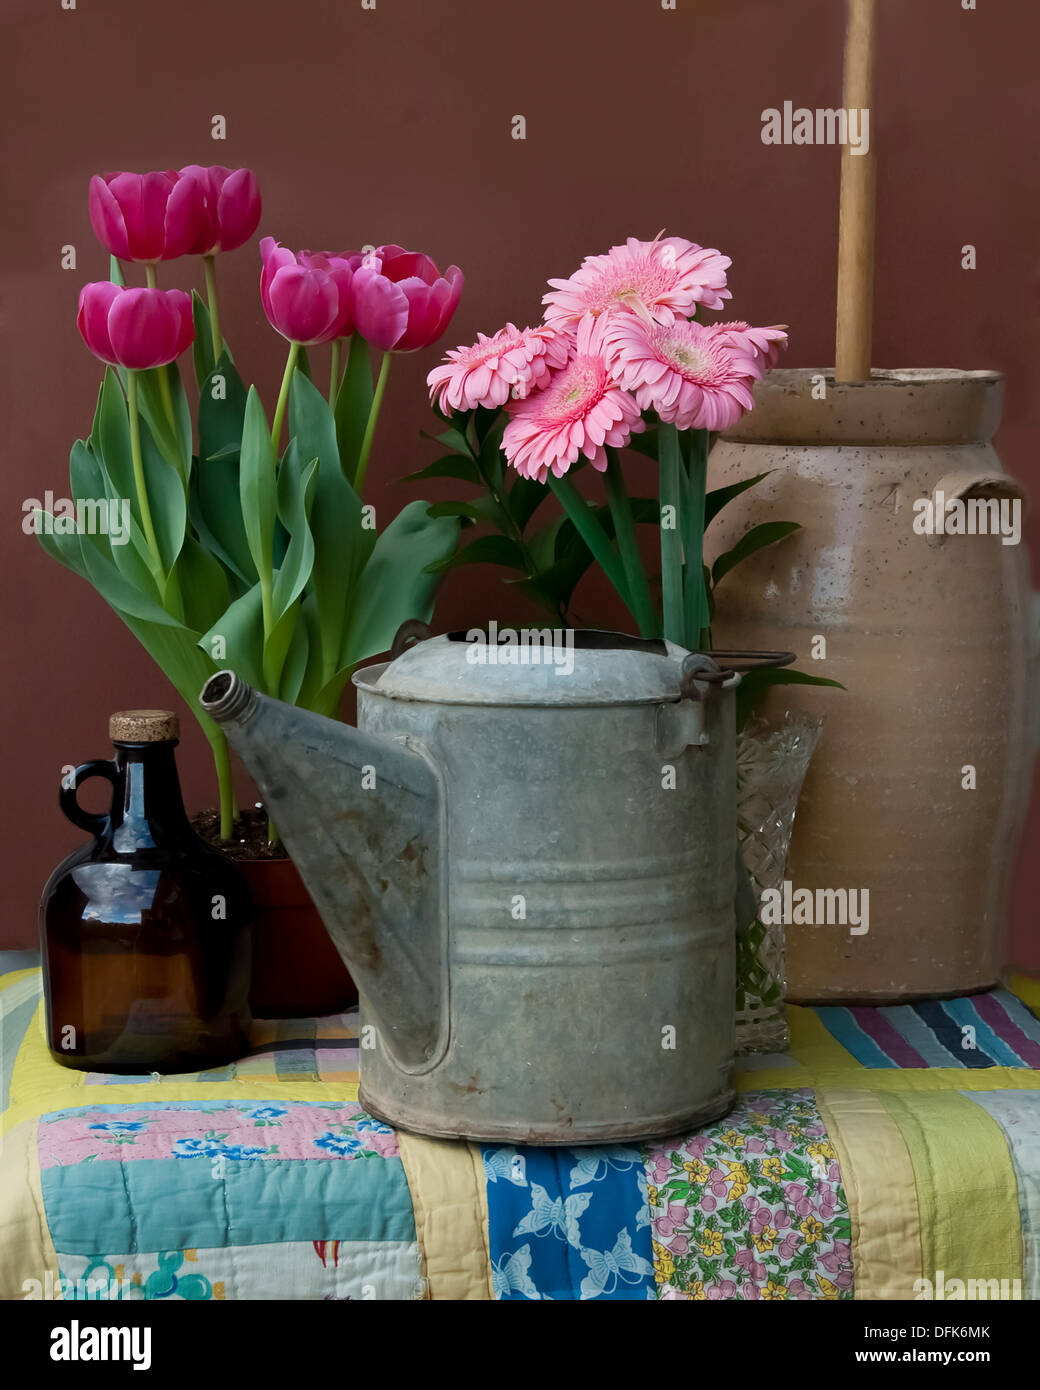 An old watering tin, jug, flowers and a butter churn. - Stock Image